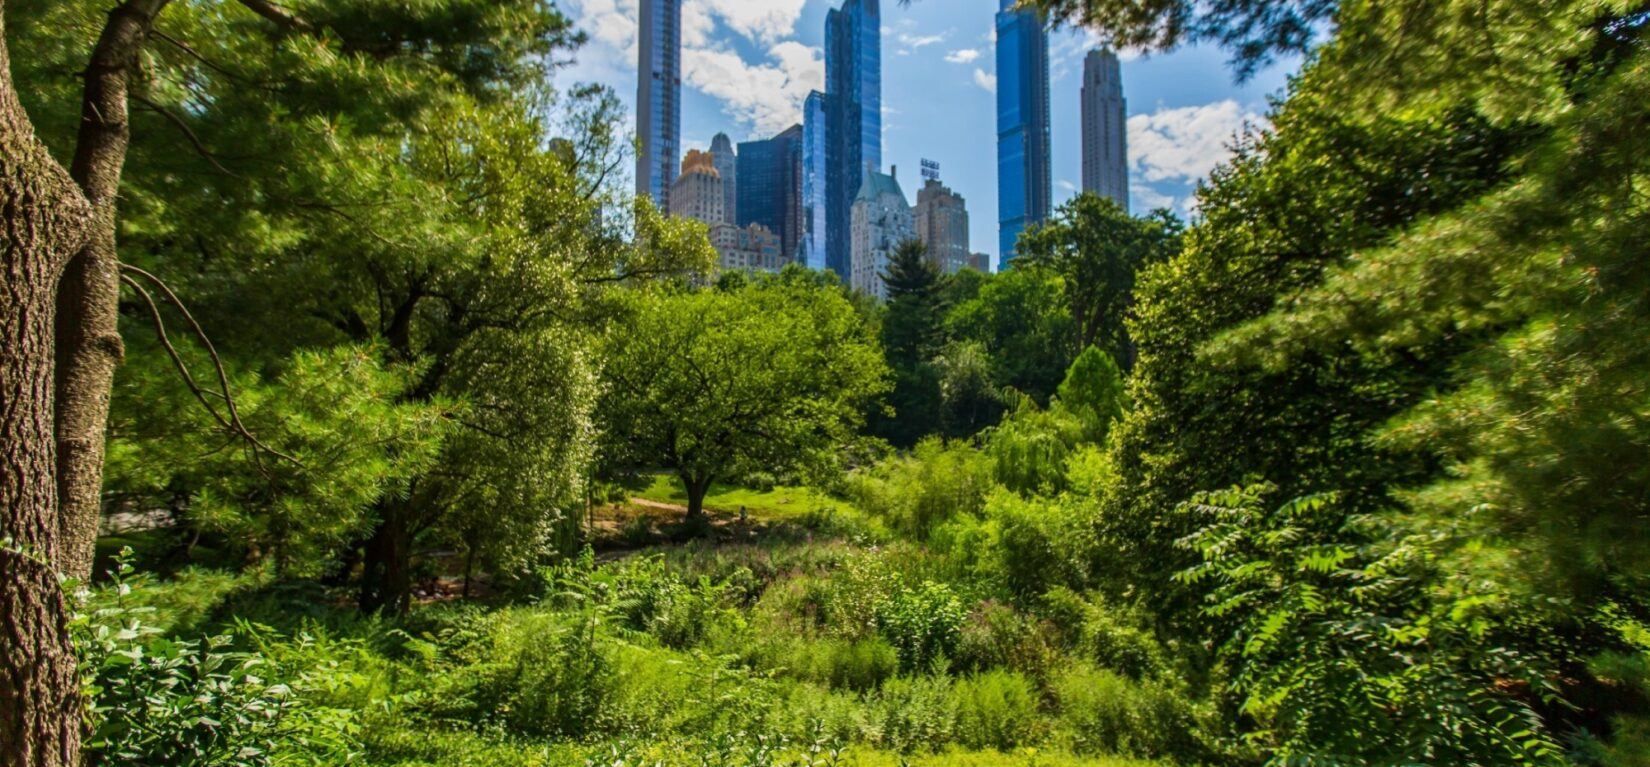 The spires of Midtown are seen in the distance, framed by the cooling foliage of Central Park